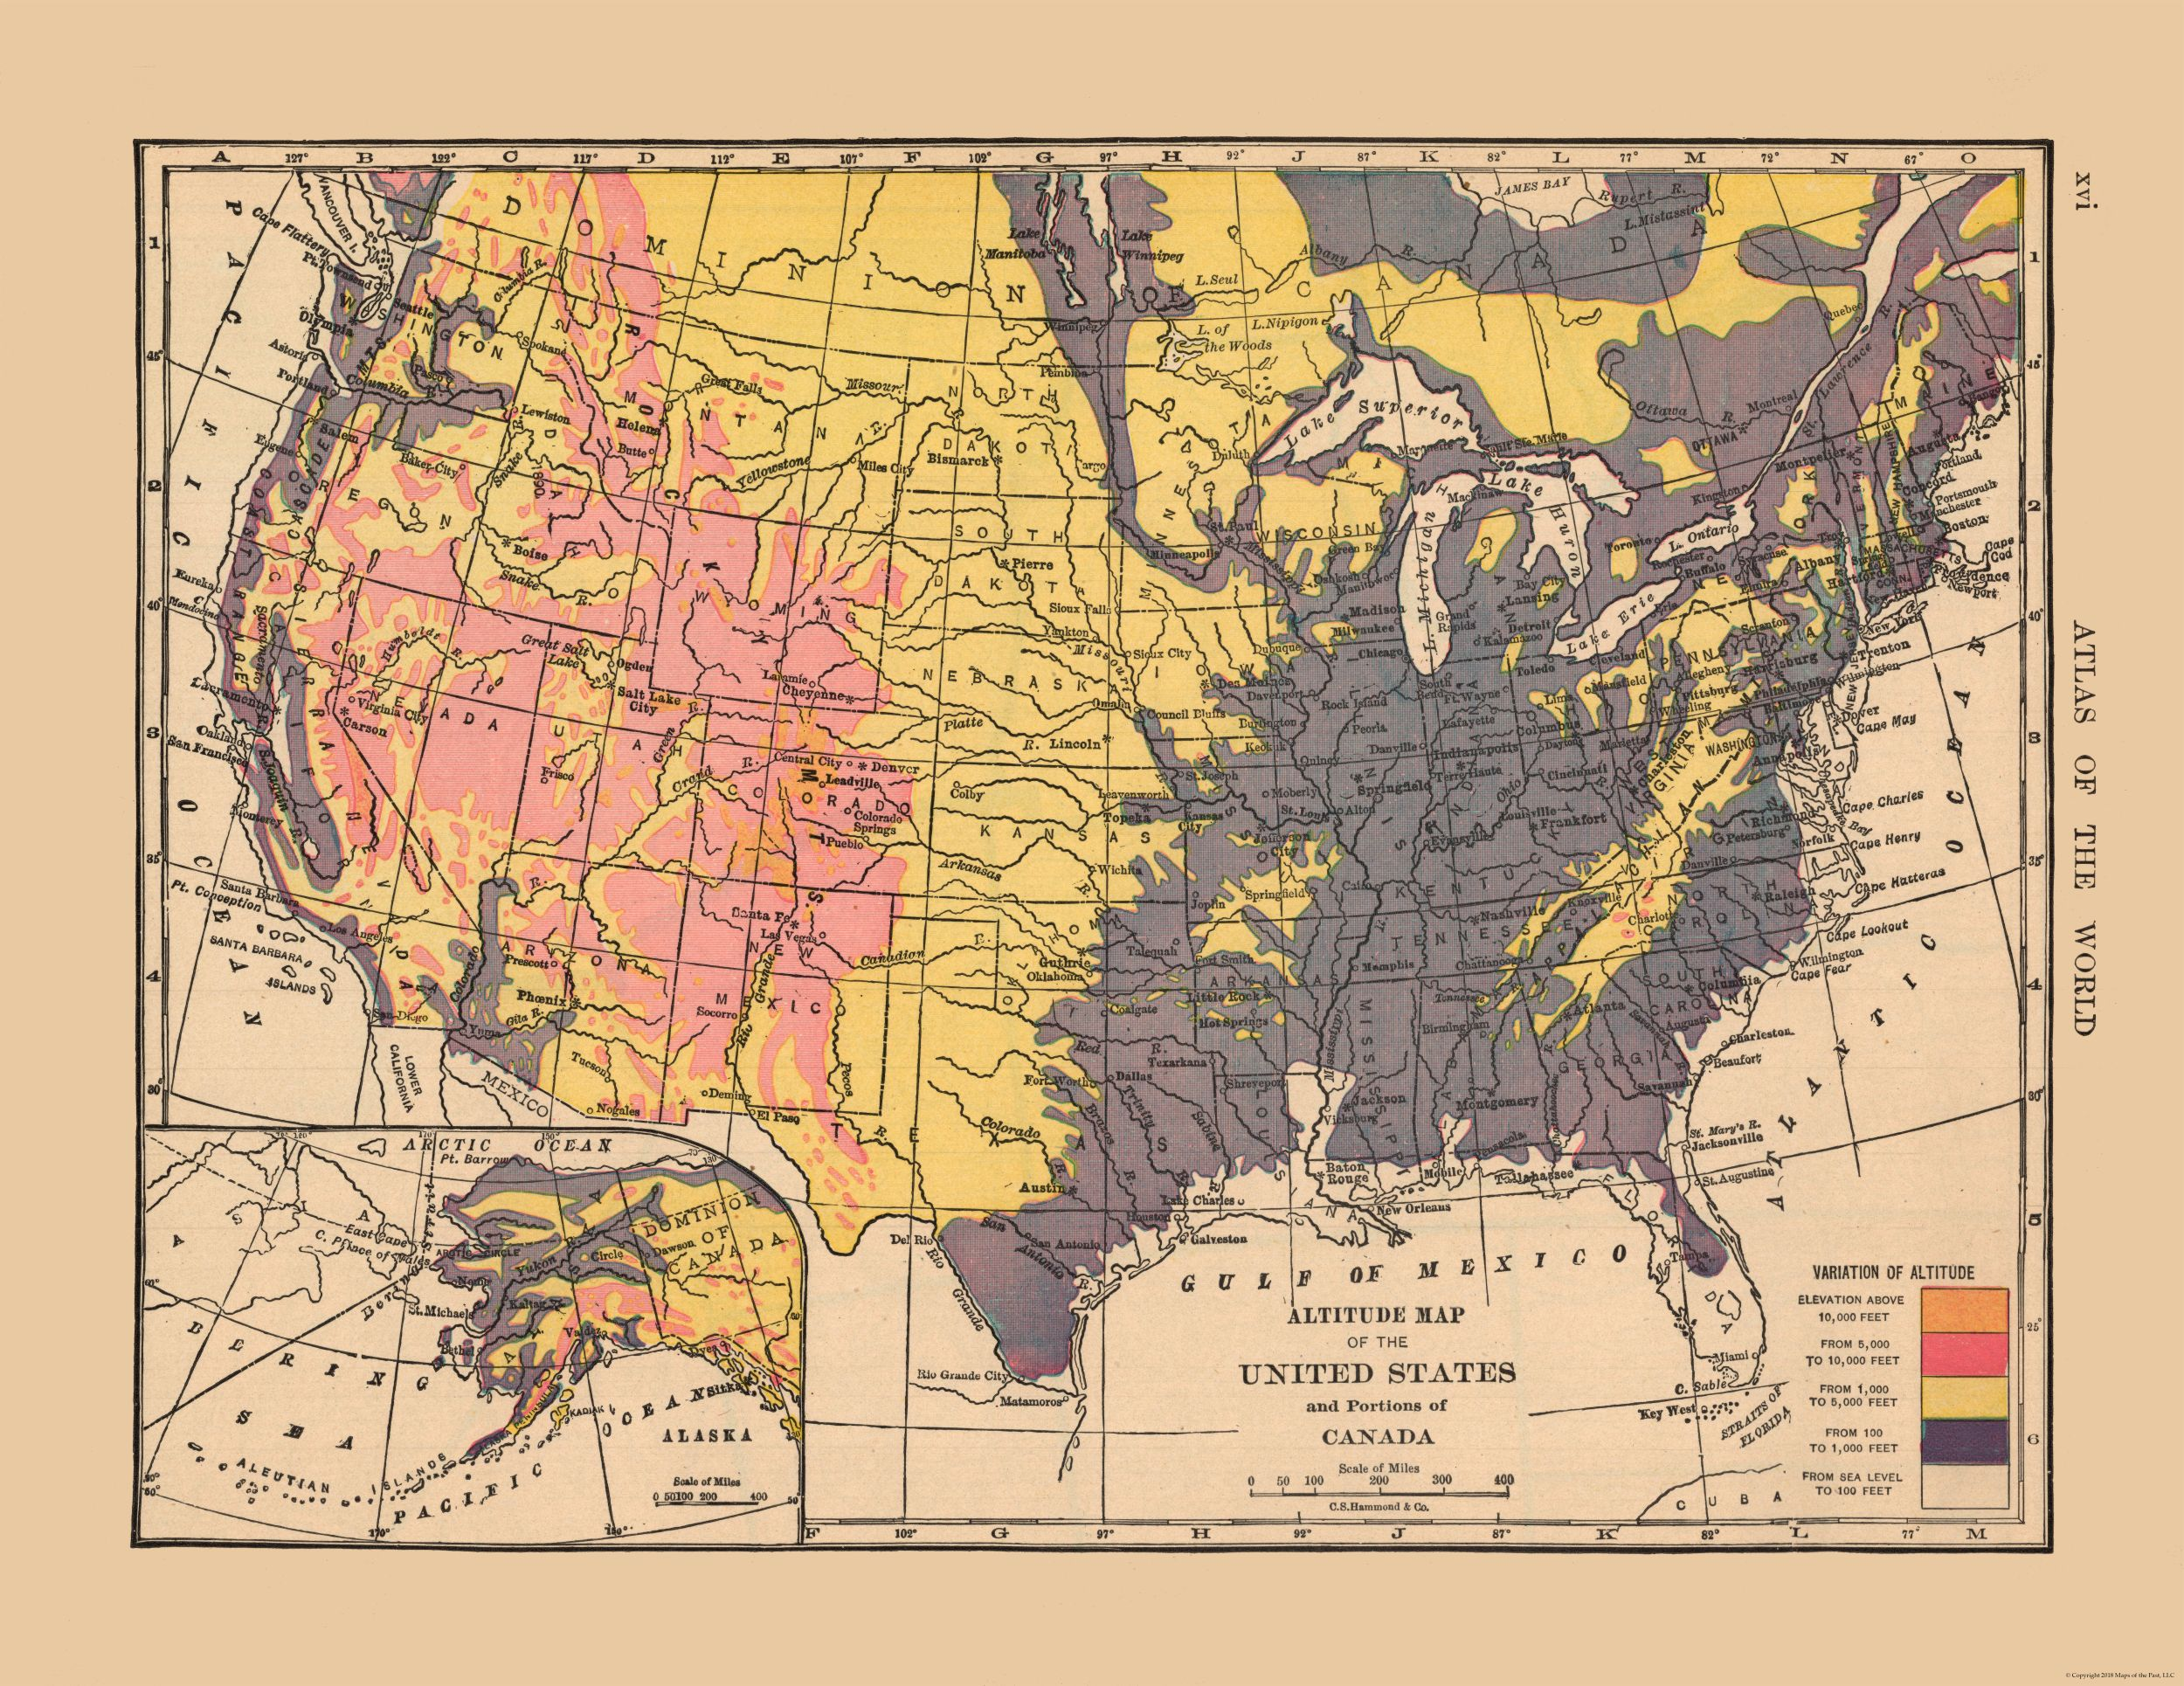 Old State Map - Alude Map of US, Canada - Hammond's Atlas 1910 - 29.79 on map of the united states, map of africa, map of the world, map in us, map germany, map russia, map of germany, map of you, map with major cities of the united states, map of virginia, map of south america, map of ohio, map of usa states only, map of georgia, map of china, map of north america, map of florida, map ou us, map of north carolina, map of him, map canada, map of europe, map of canada, map of texas, map of life, map of italy, map of mexico, map france, map japan, map of michigan, map of usa, map for us, map of me, map uk, map of myself, map of events, map of california,